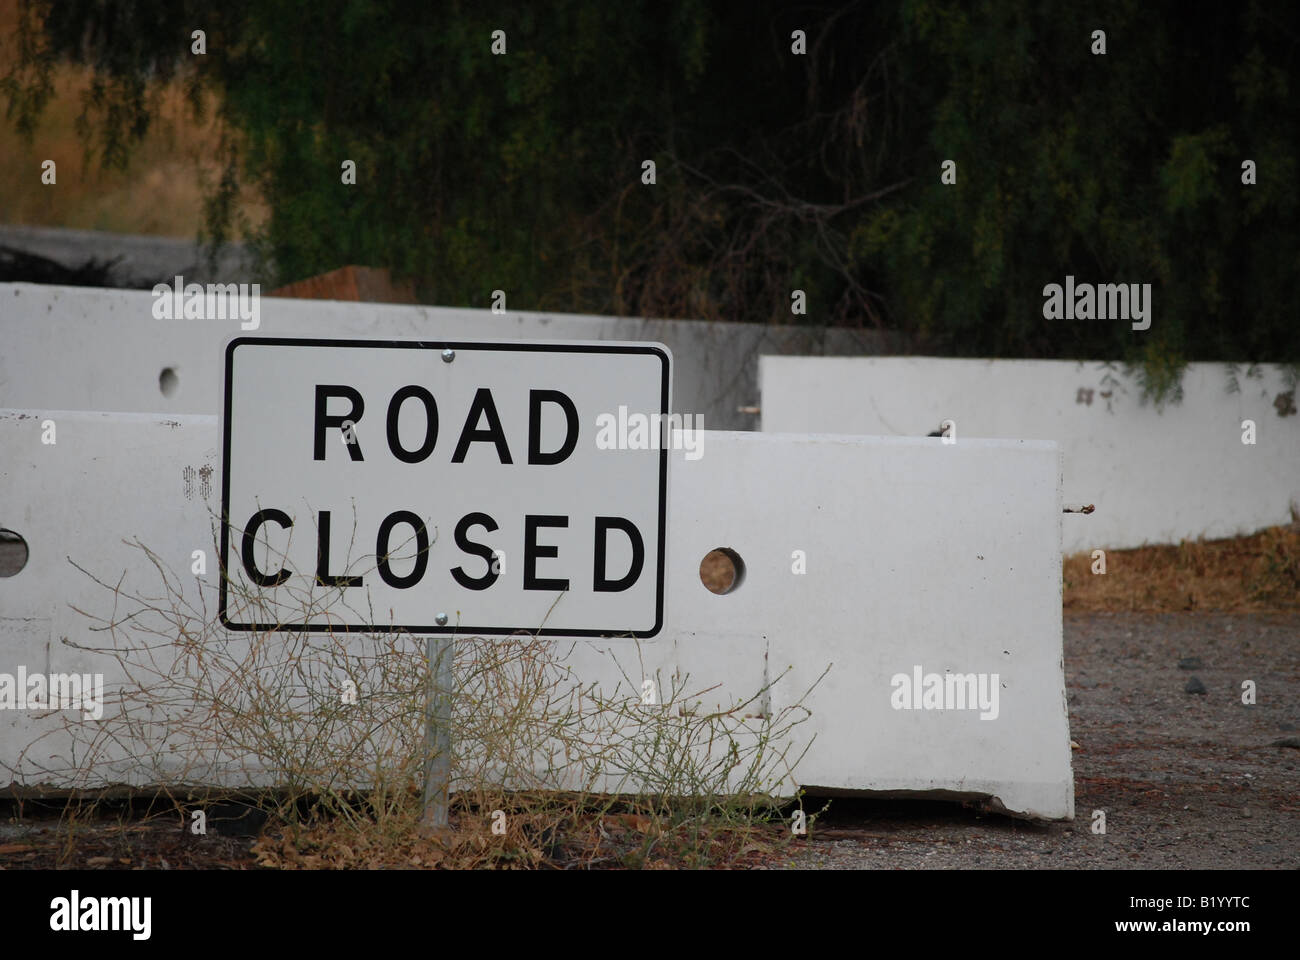 Road closed sign with concrete barriers stock photo